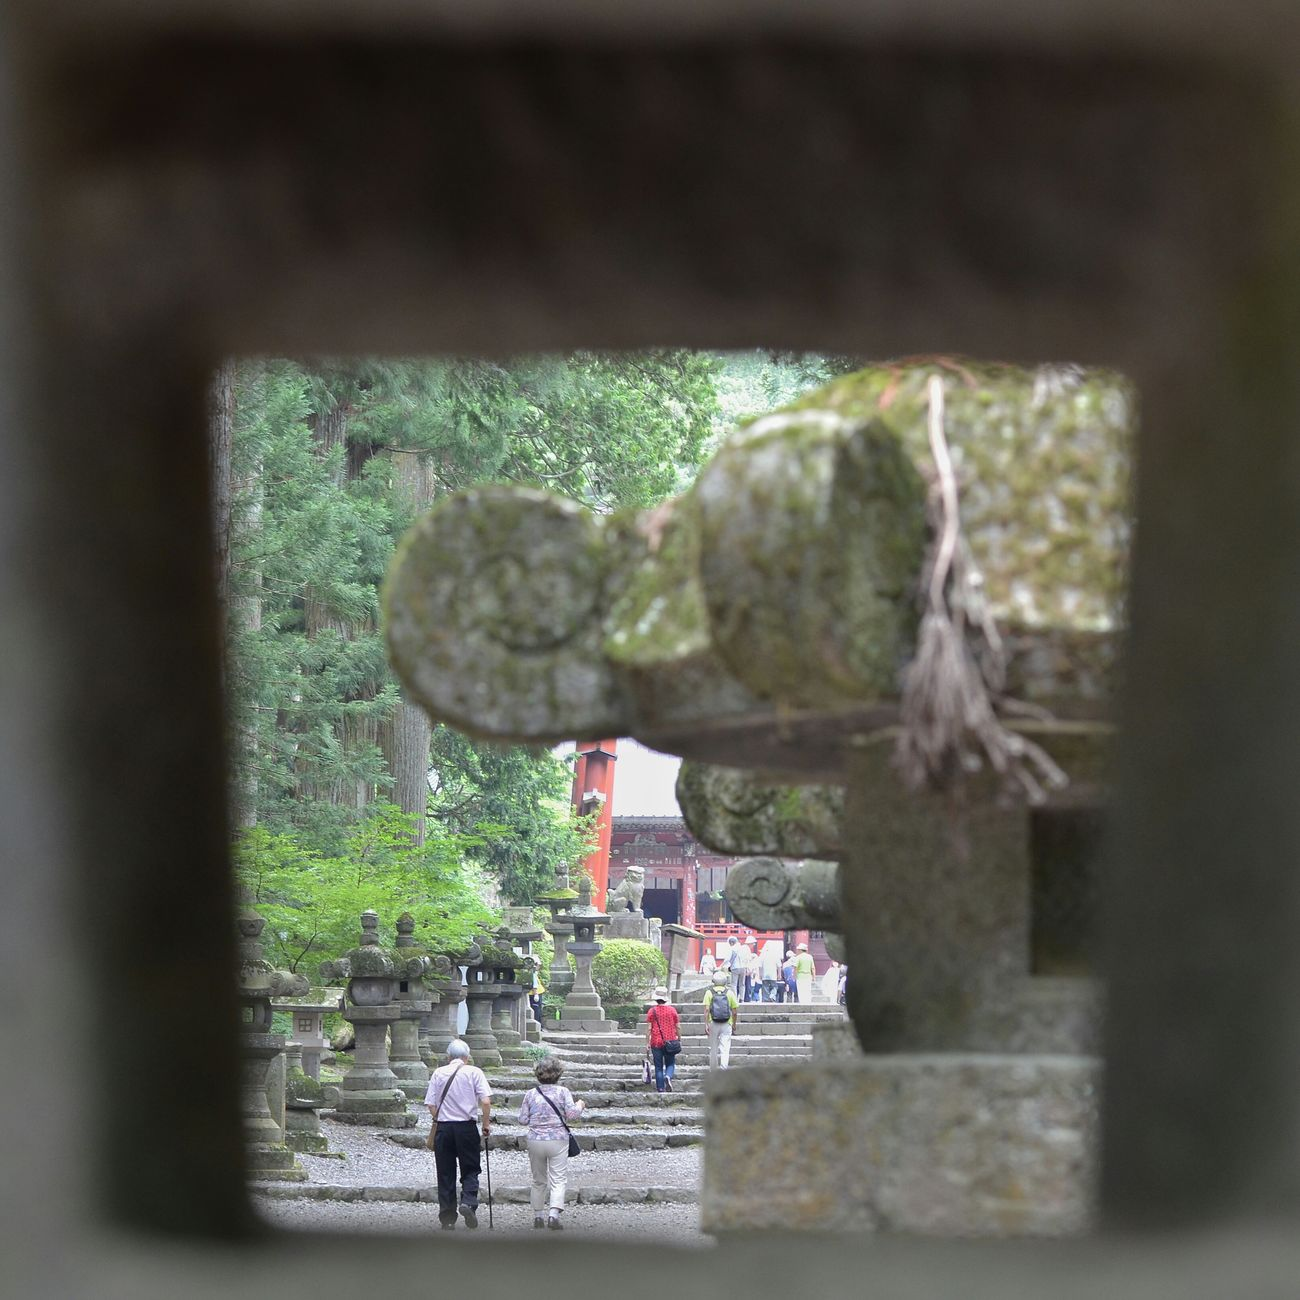 神社 参道 On The Way Japanese Shrine Stone Lanterns Square Crop People People Watching People Photography From My Point Of View Frame Within A Frame Capture The Moment EyeEm Best Shots EyeEm Best Edits